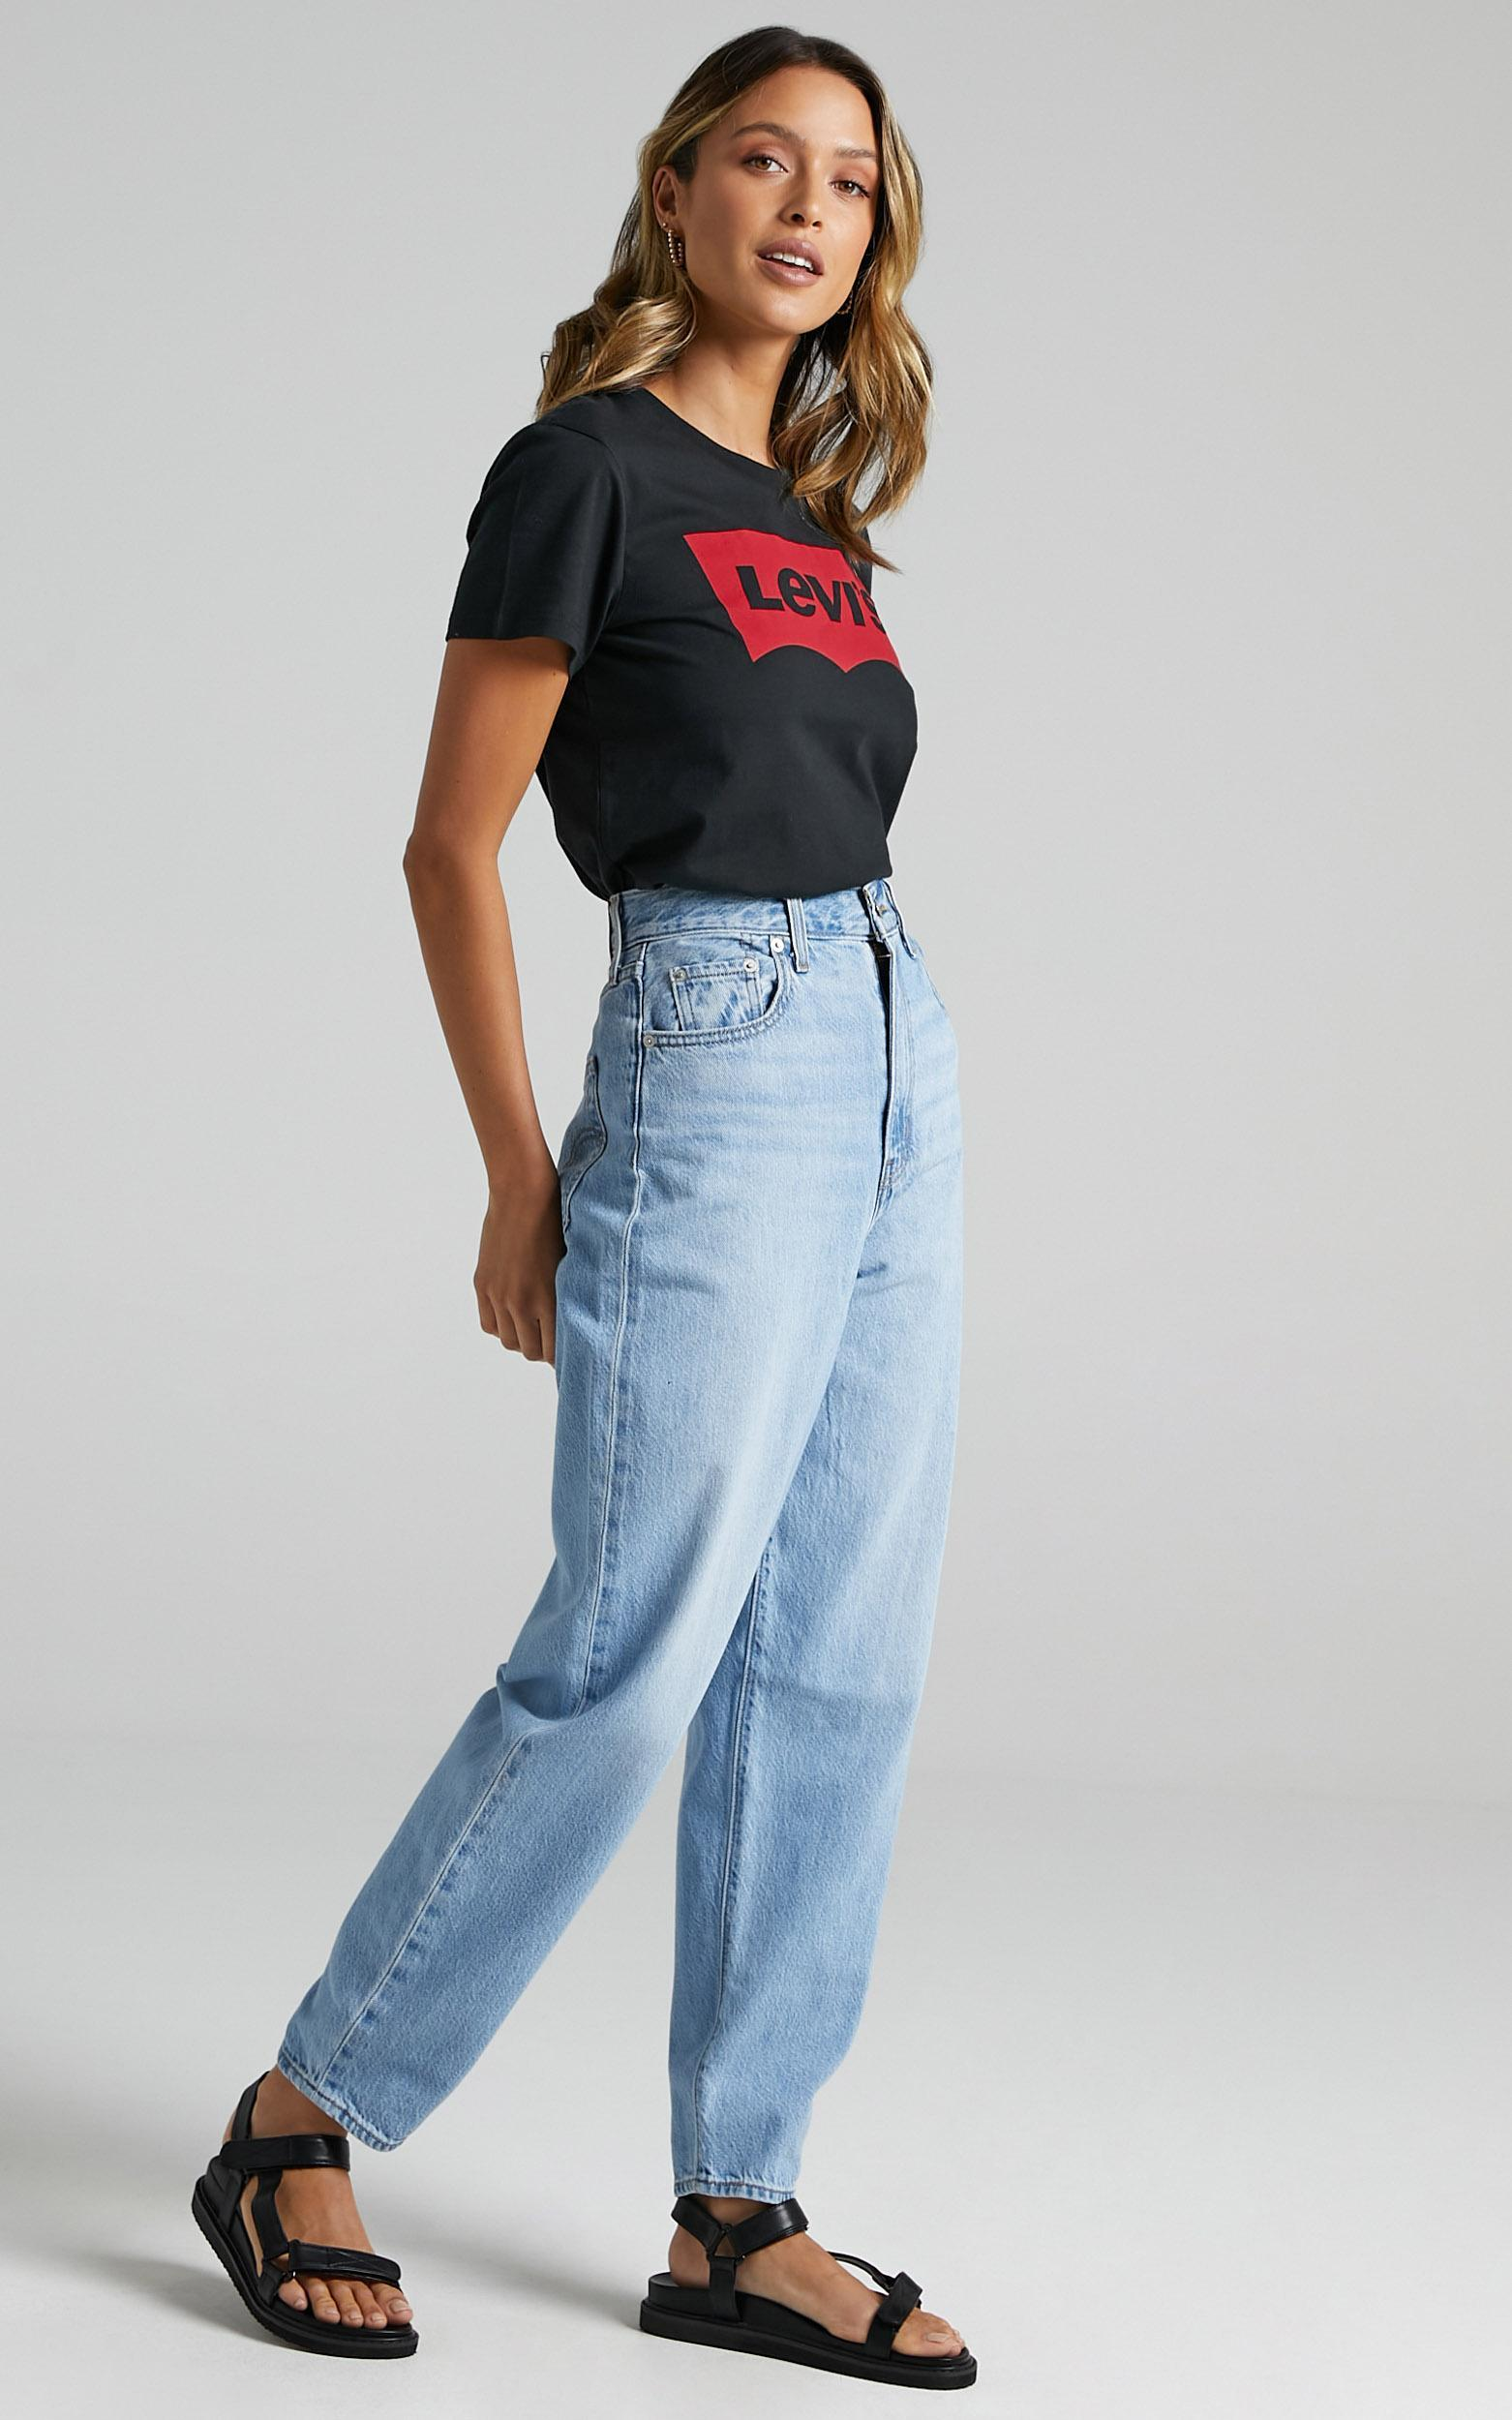 Levis - High Loose Taper Jean in Way Out Tencel - 6 (XS), Blue, hi-res image number null